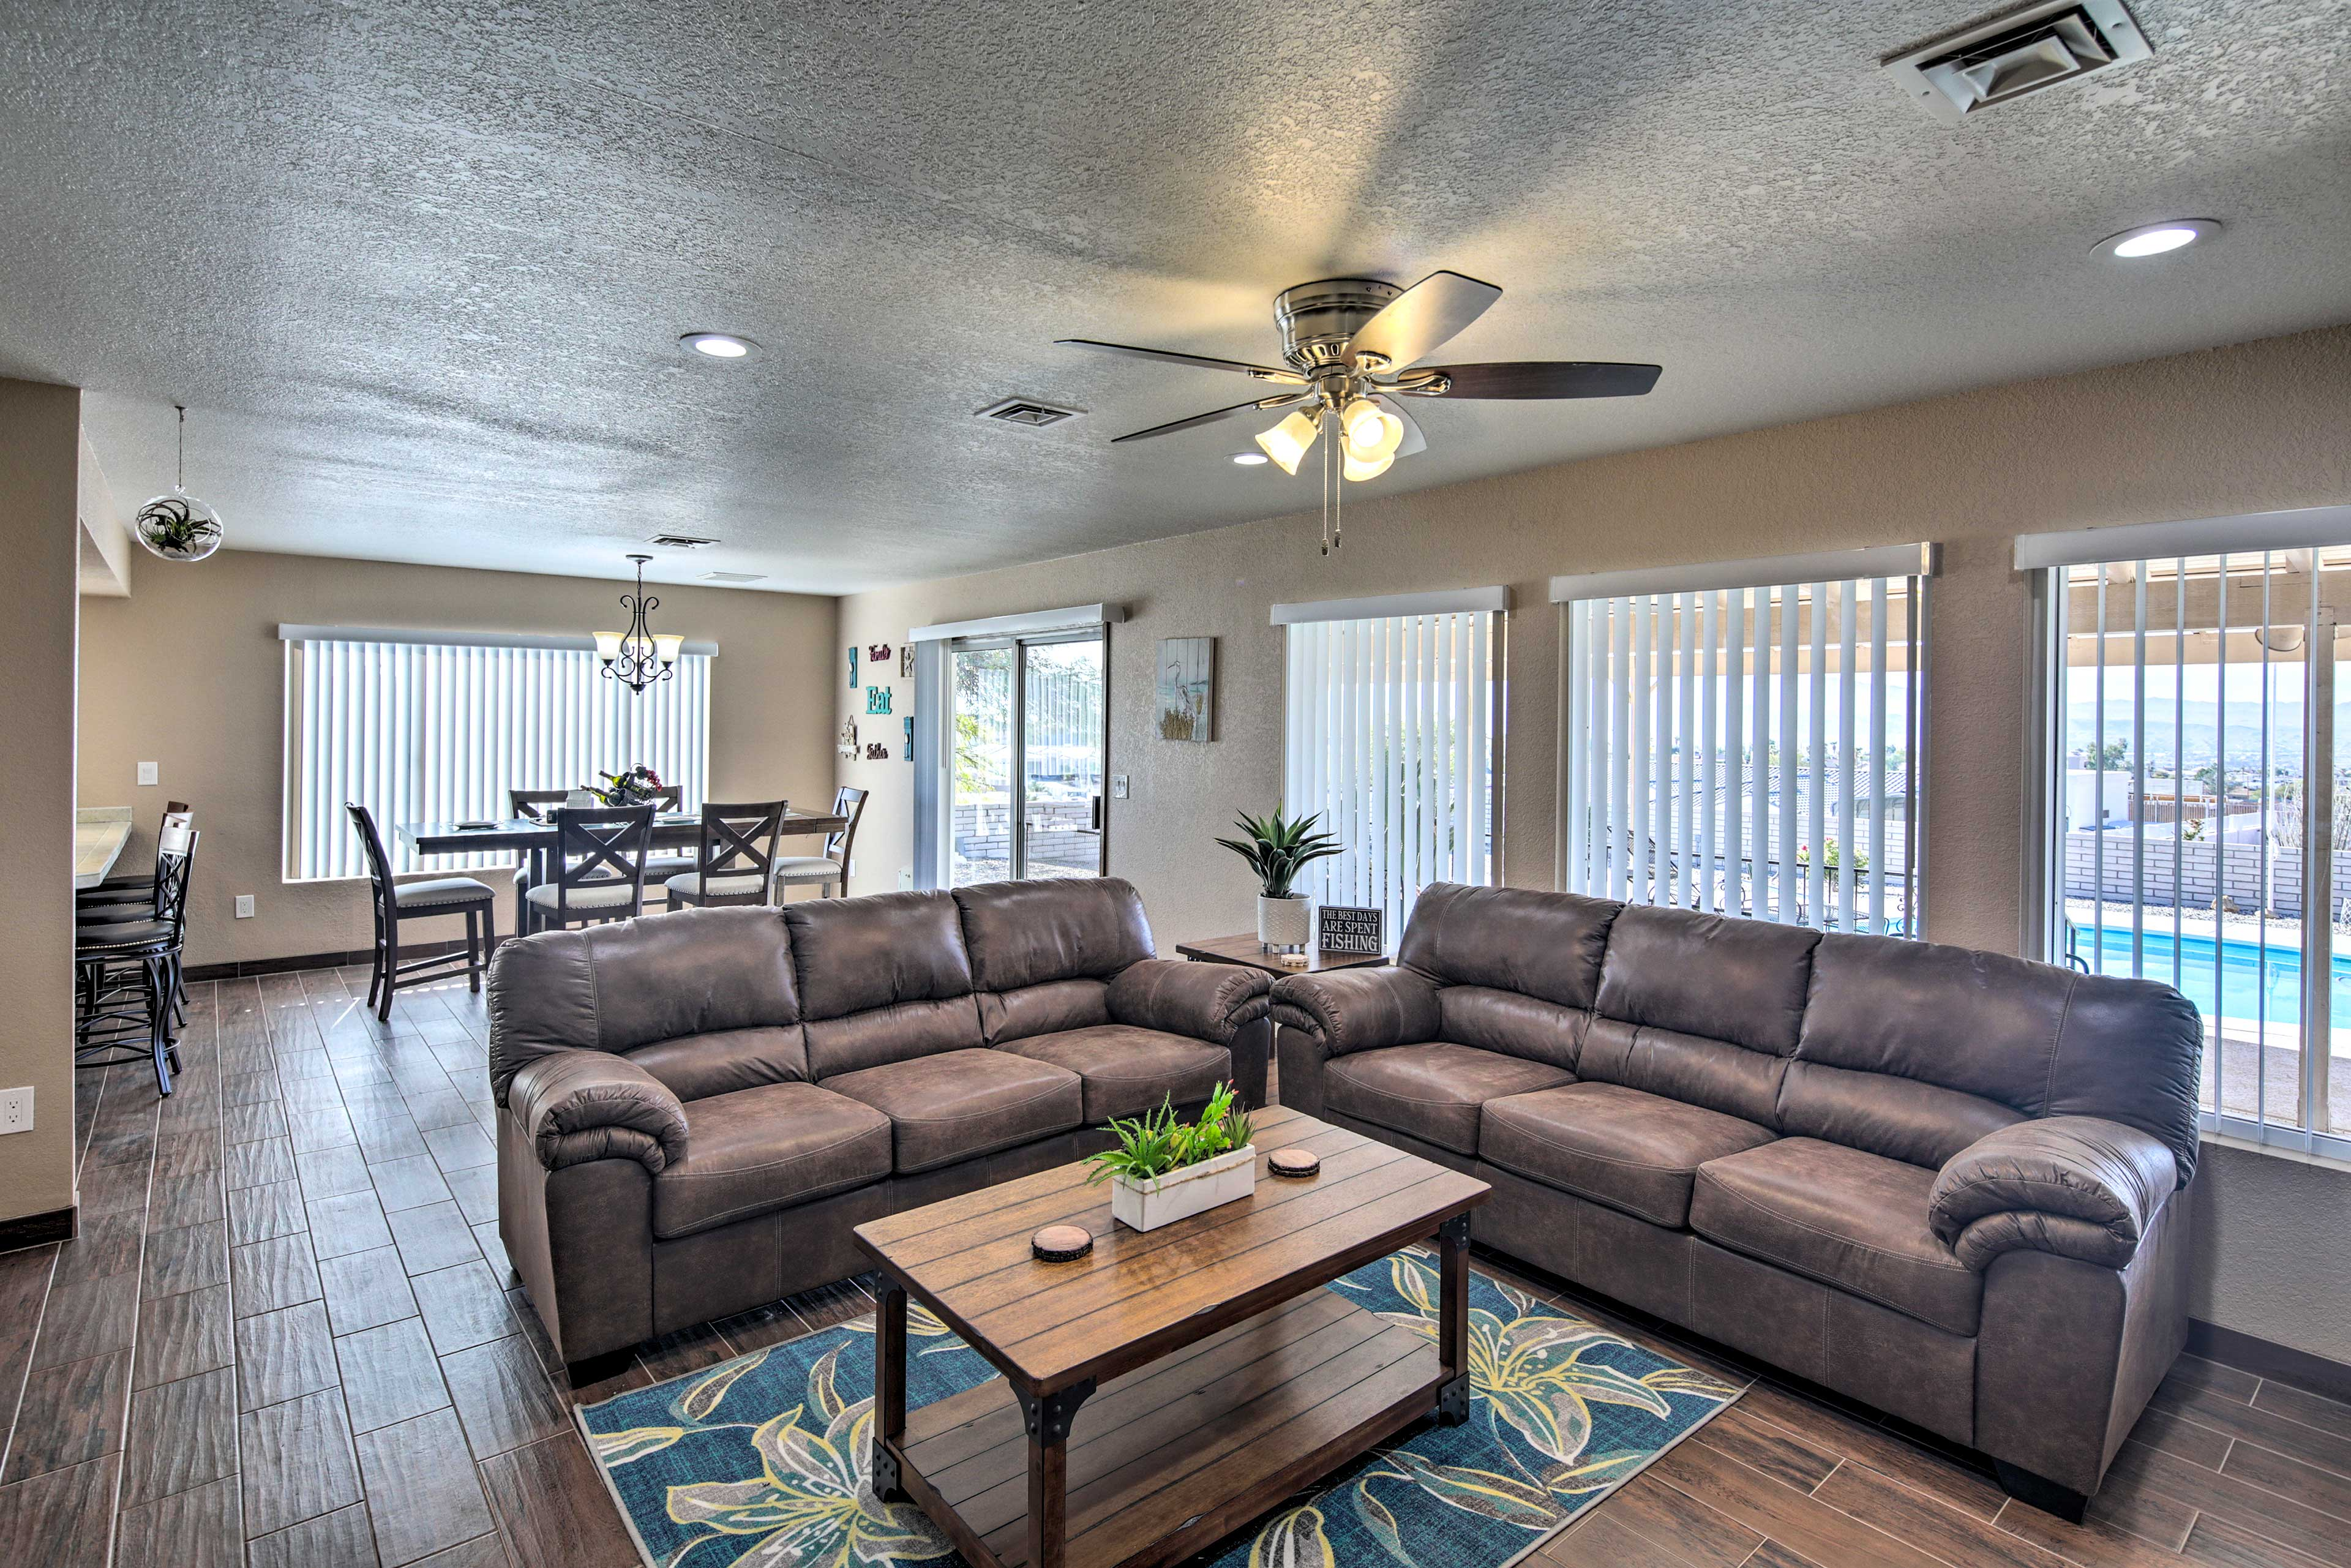 Lake Havasu State Park is just 2 miles from this cozy abode!